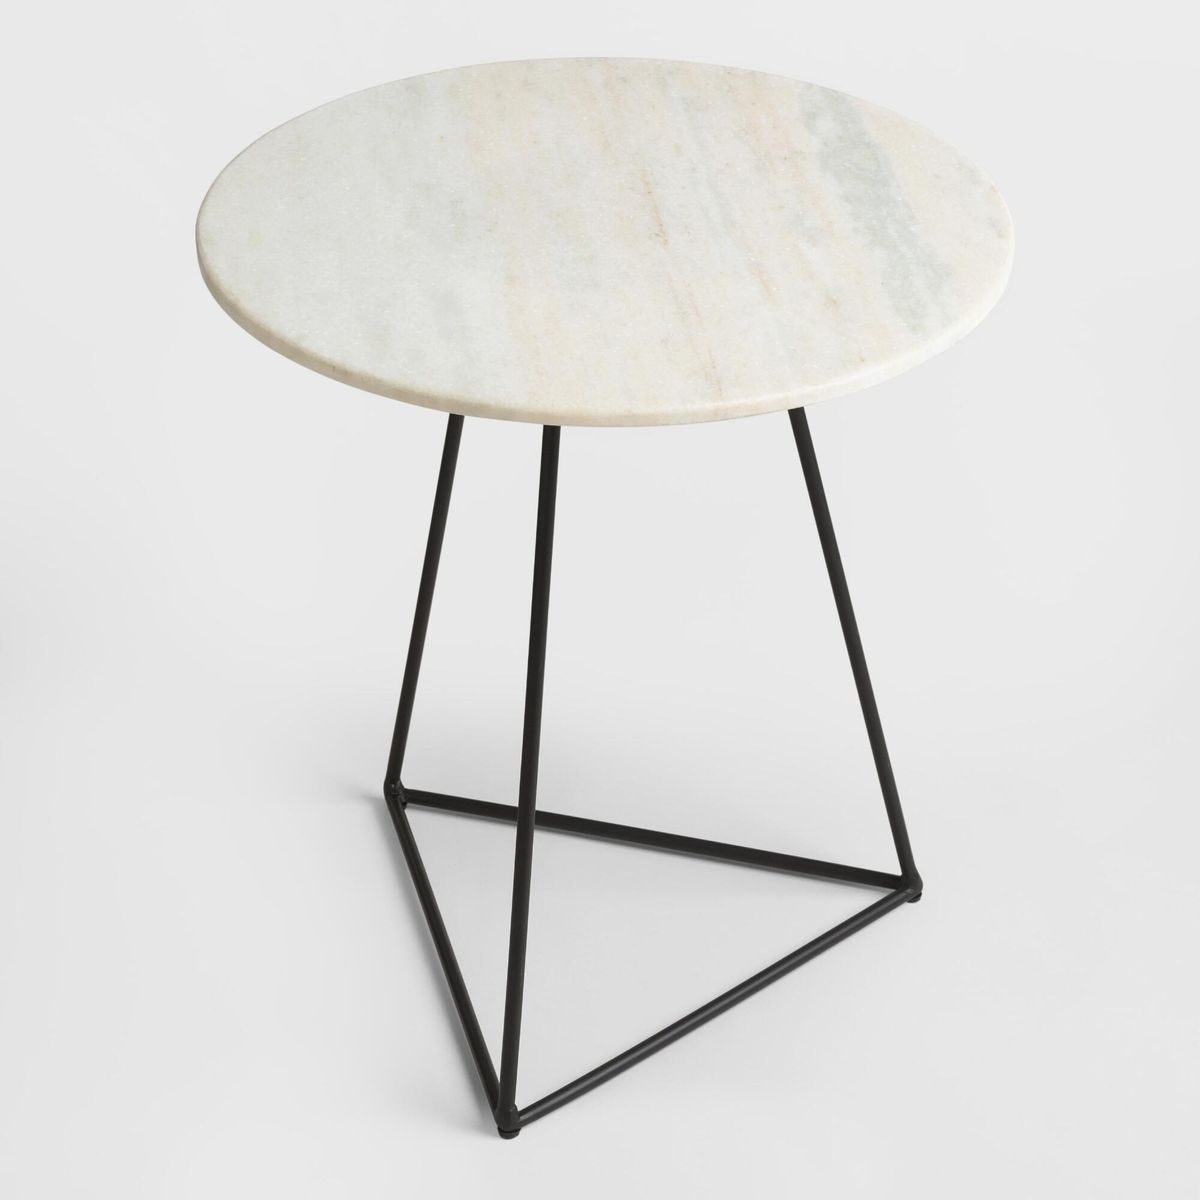 outstanding target side table stool bedside round stools white small recycled storage block wood timber low solid outdoor scalloped accent full size curved mirrored metal frame